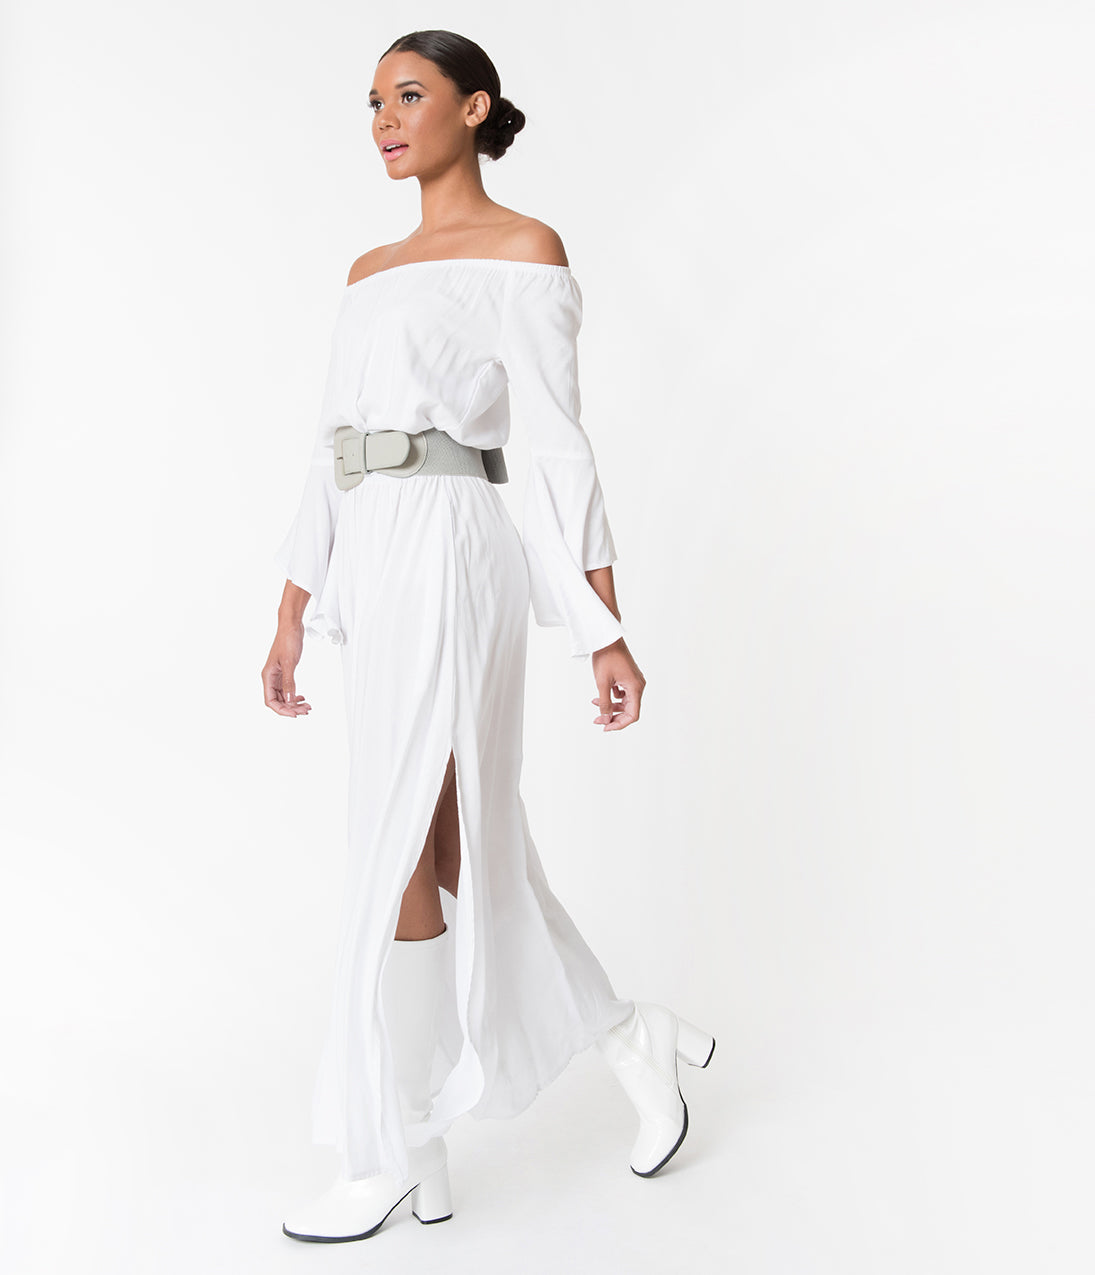 1960s Dresses: New 60s Style Dresses – Jackie O to Mod Retro Style White Off The Shoulder Long Angel Sleeved Maxi Dress $62.00 AT vintagedancer.com